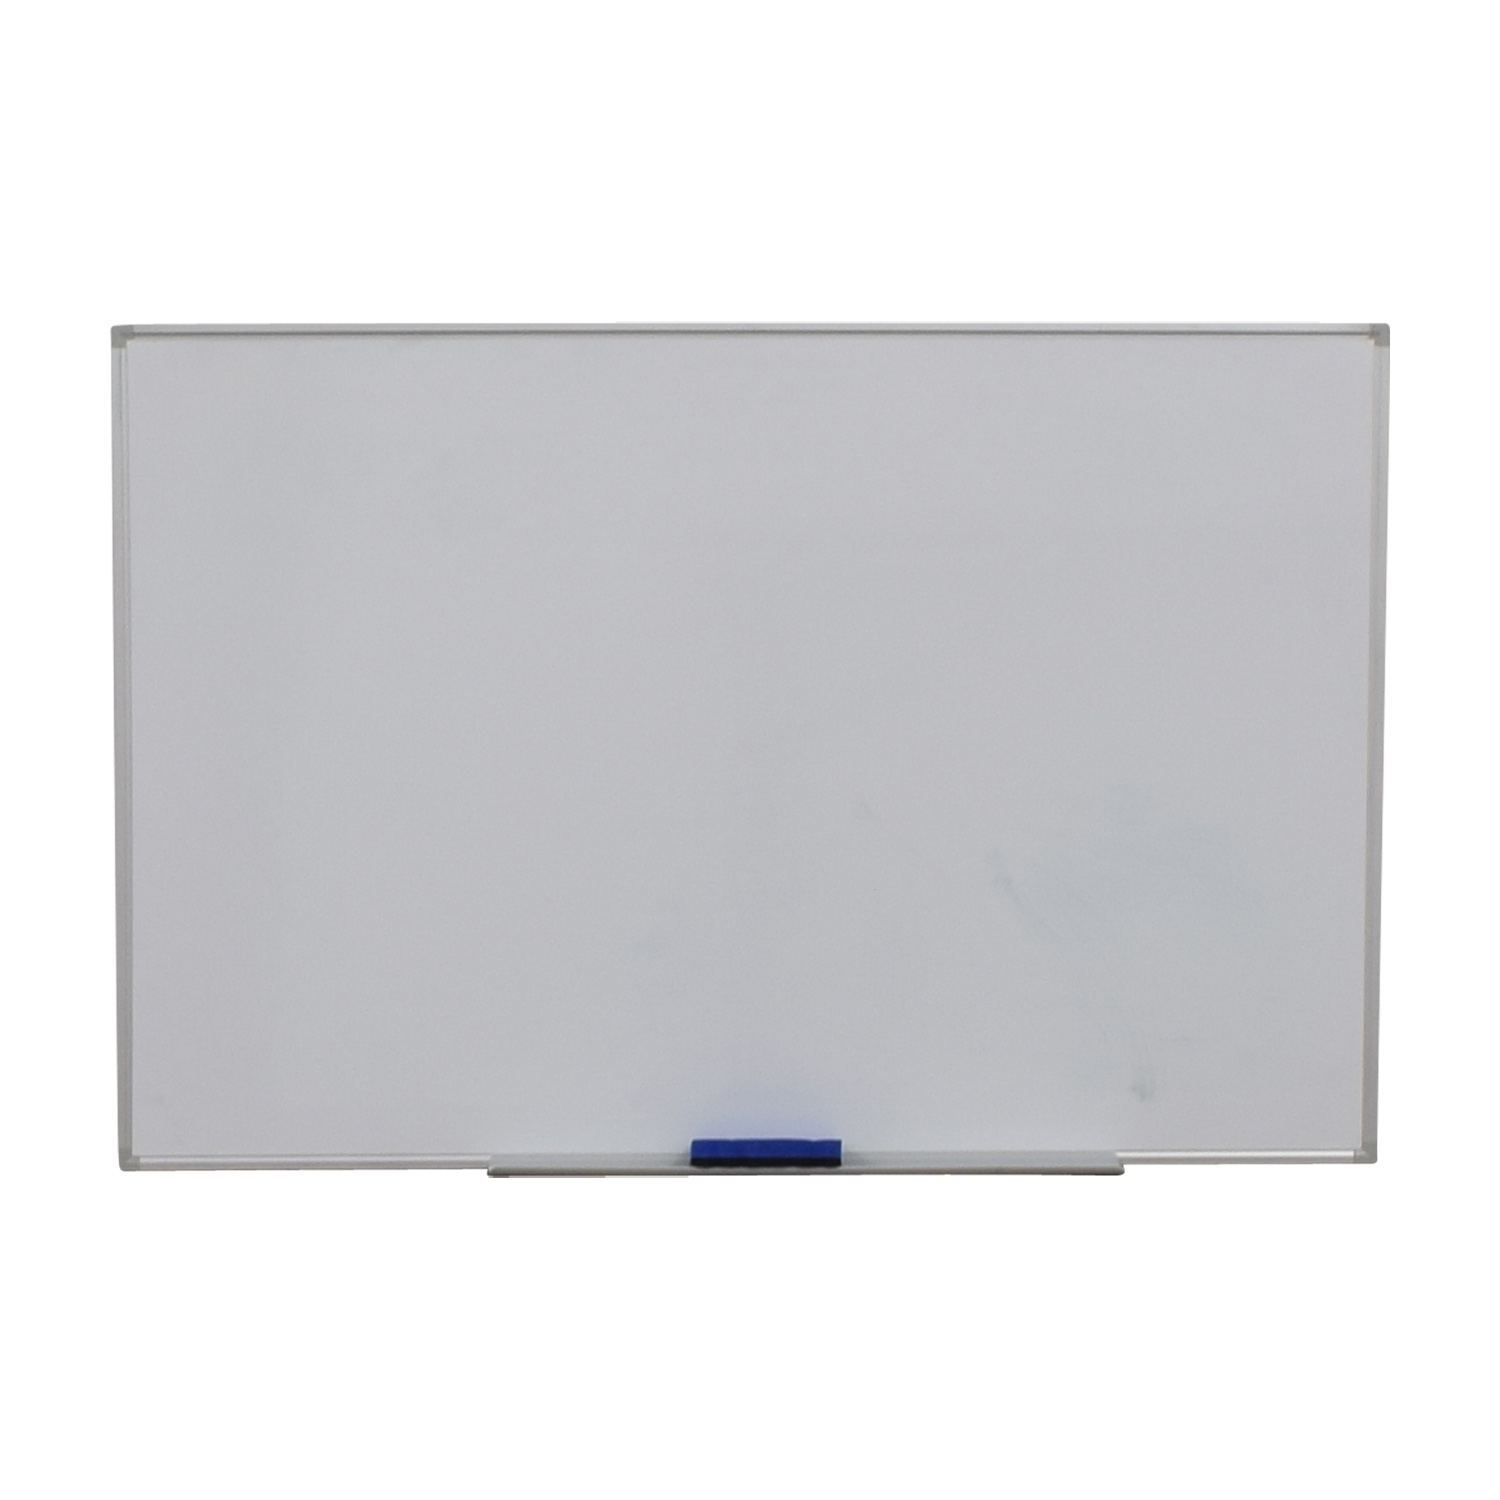 OfficePro Slimline Whiteboard / Decorative Accents